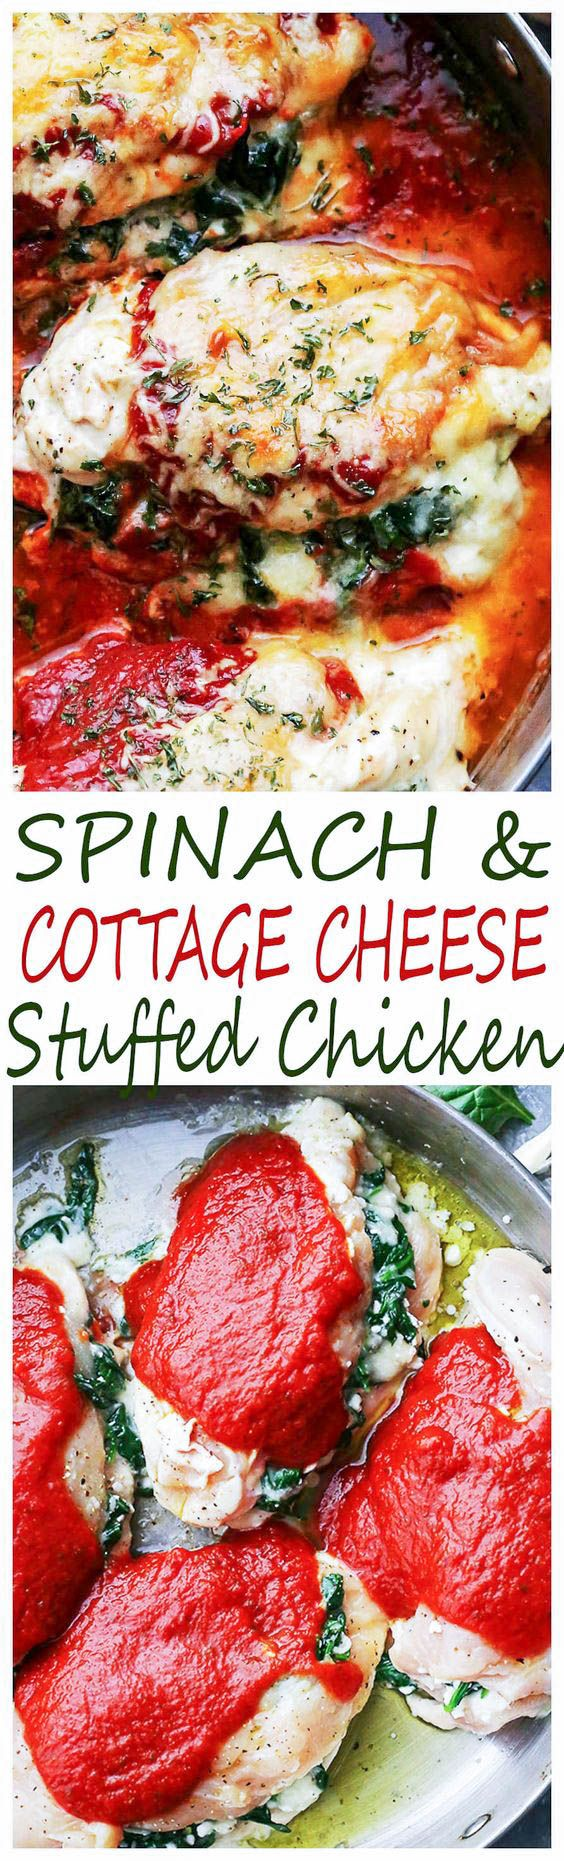 Chicken and cottage cheese recipes